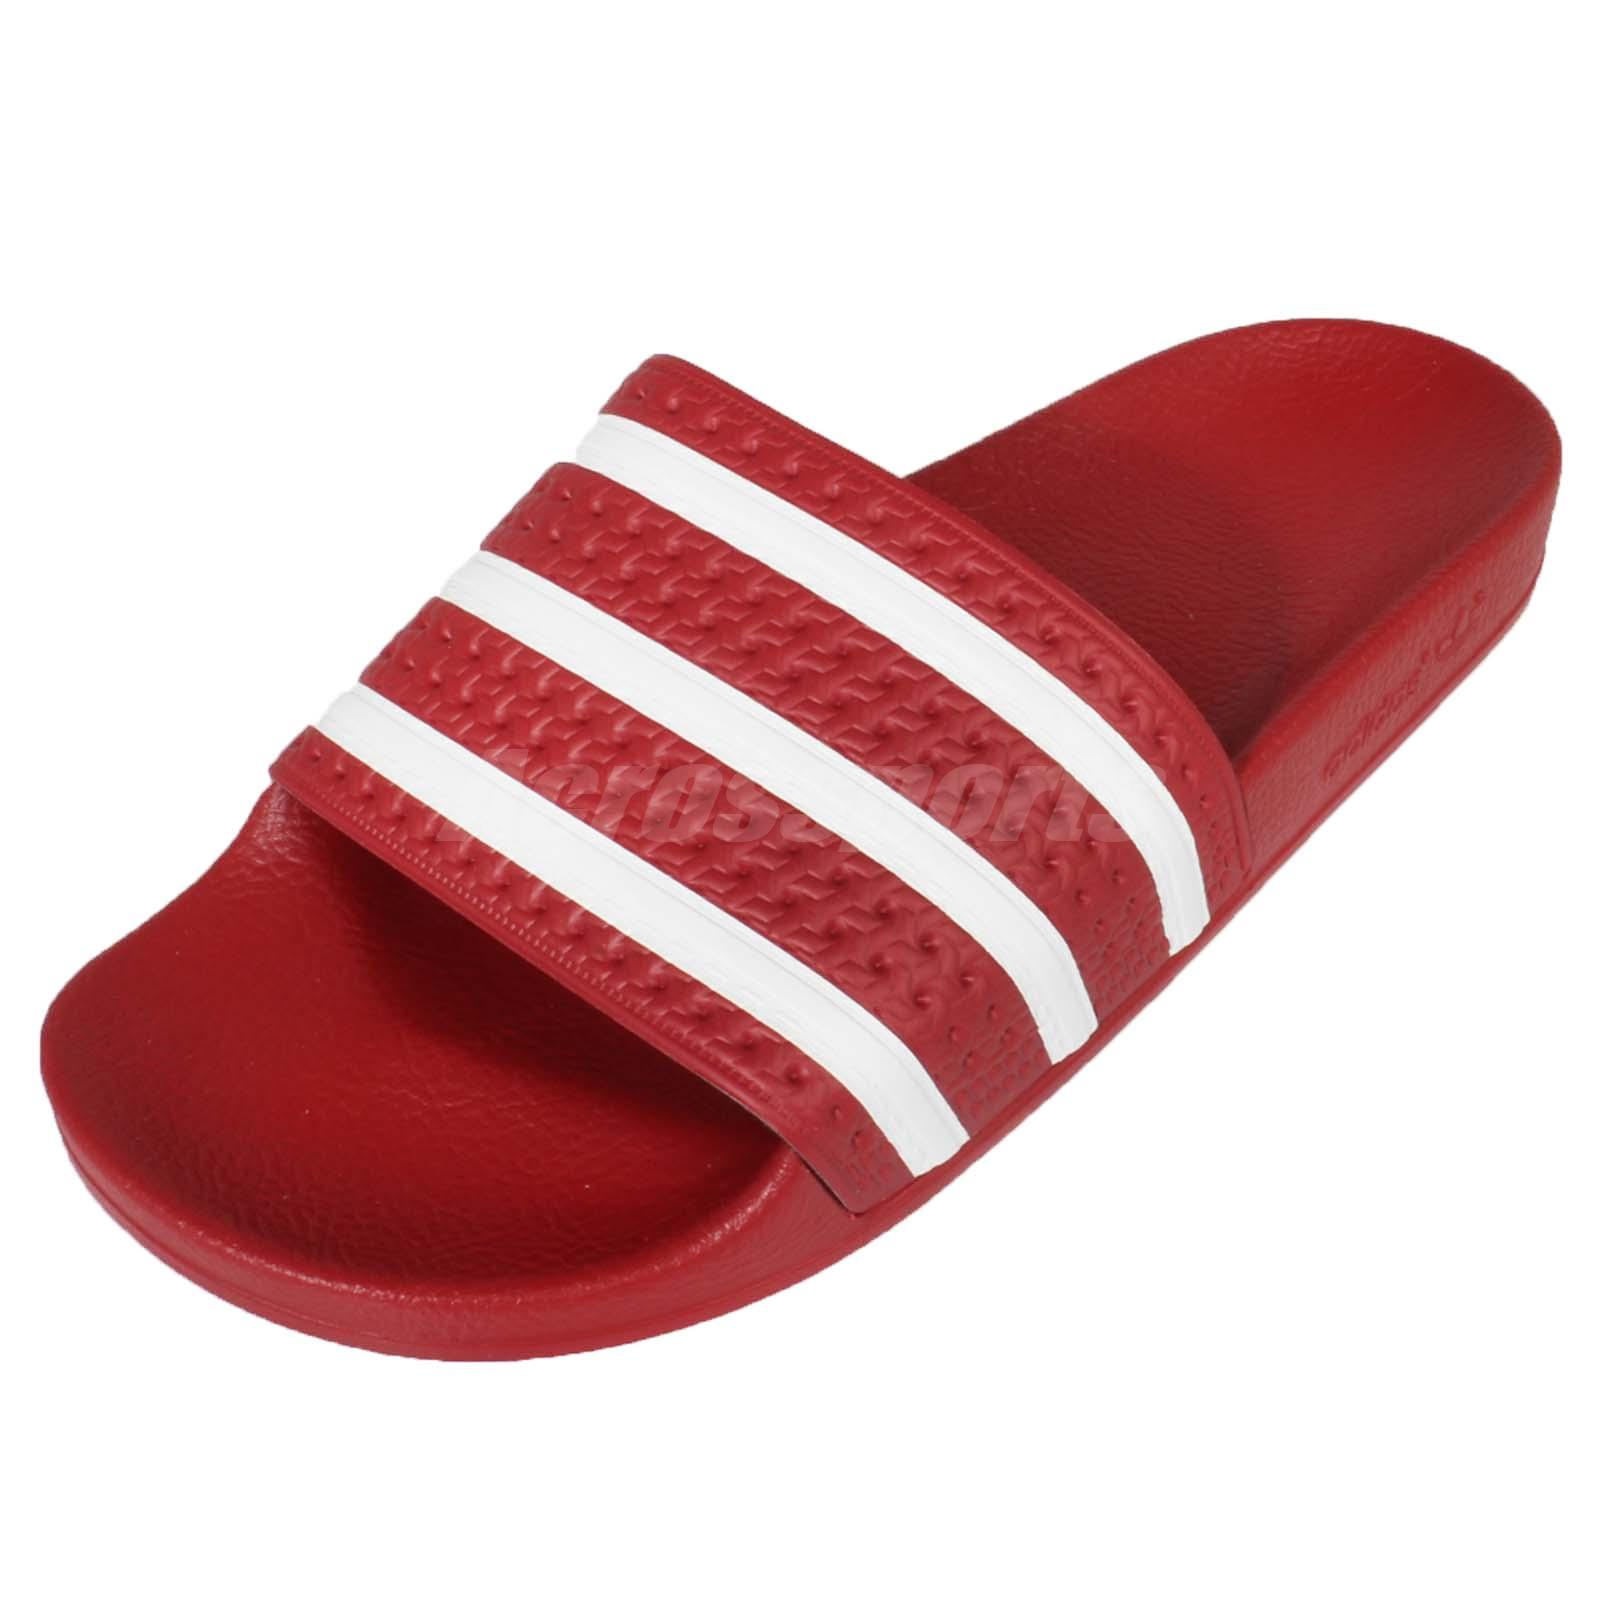 43bd86f460ca adidas Performance Adilette Red White Mens Sports Sandals Slides Slippers  288193